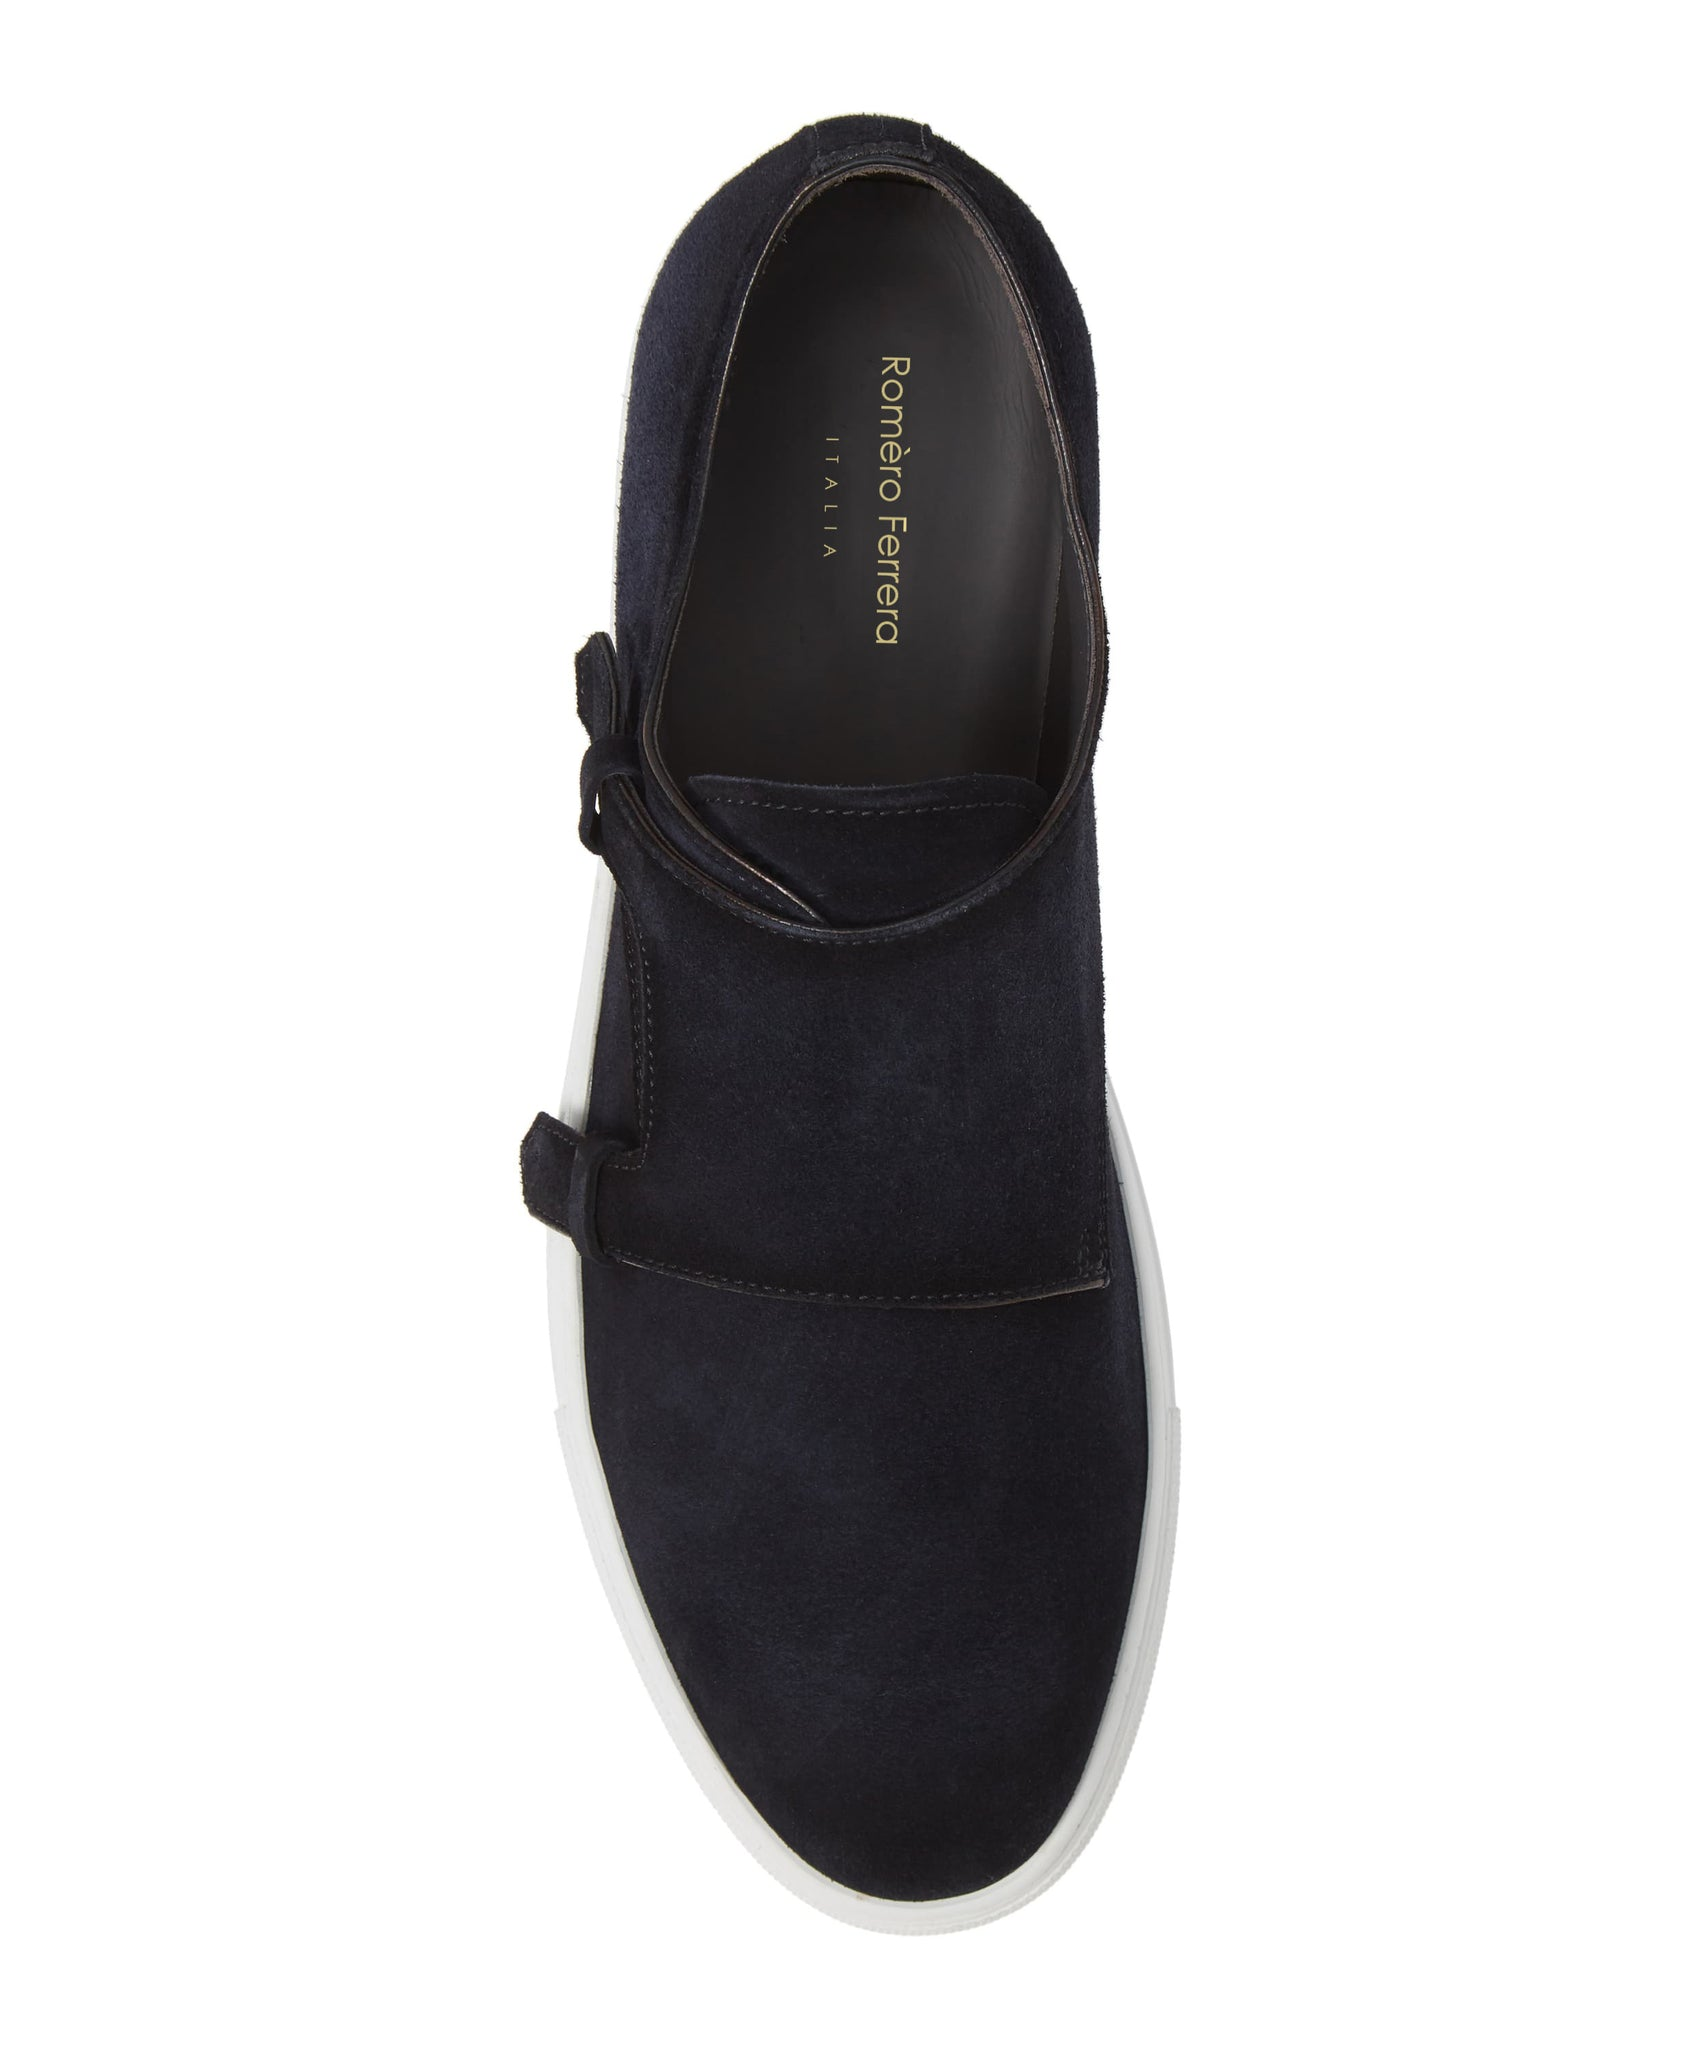 Navy Blue Burnished Suede Leather Monk Strap Slip-on Sneaker for Men. White Comfortable Cup Sole.